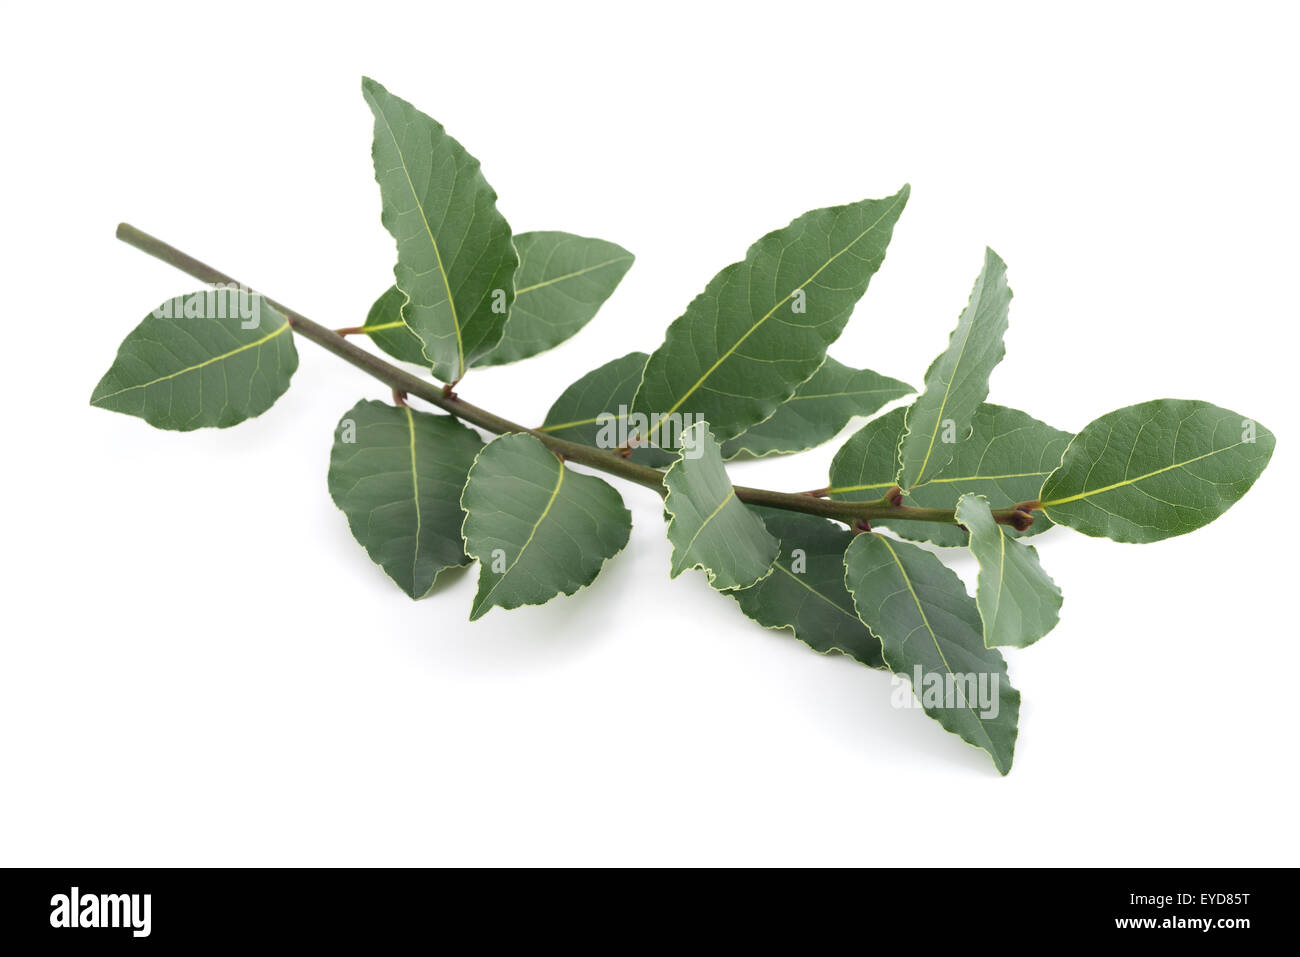 Laurel branch isolated on white background - Stock Image